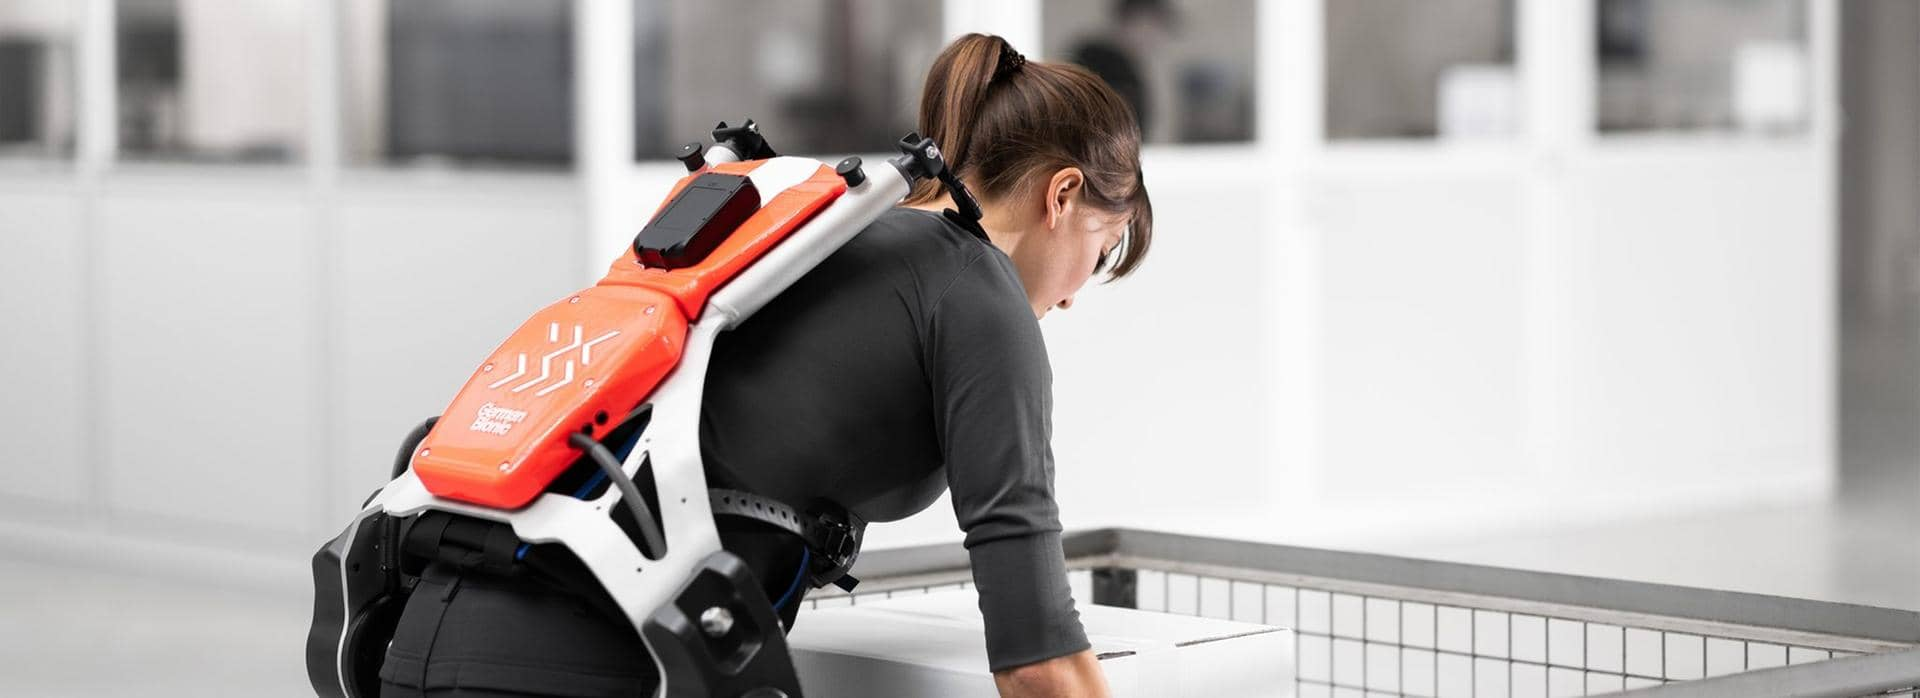 DB Schenker Exoskeletons woman lifting